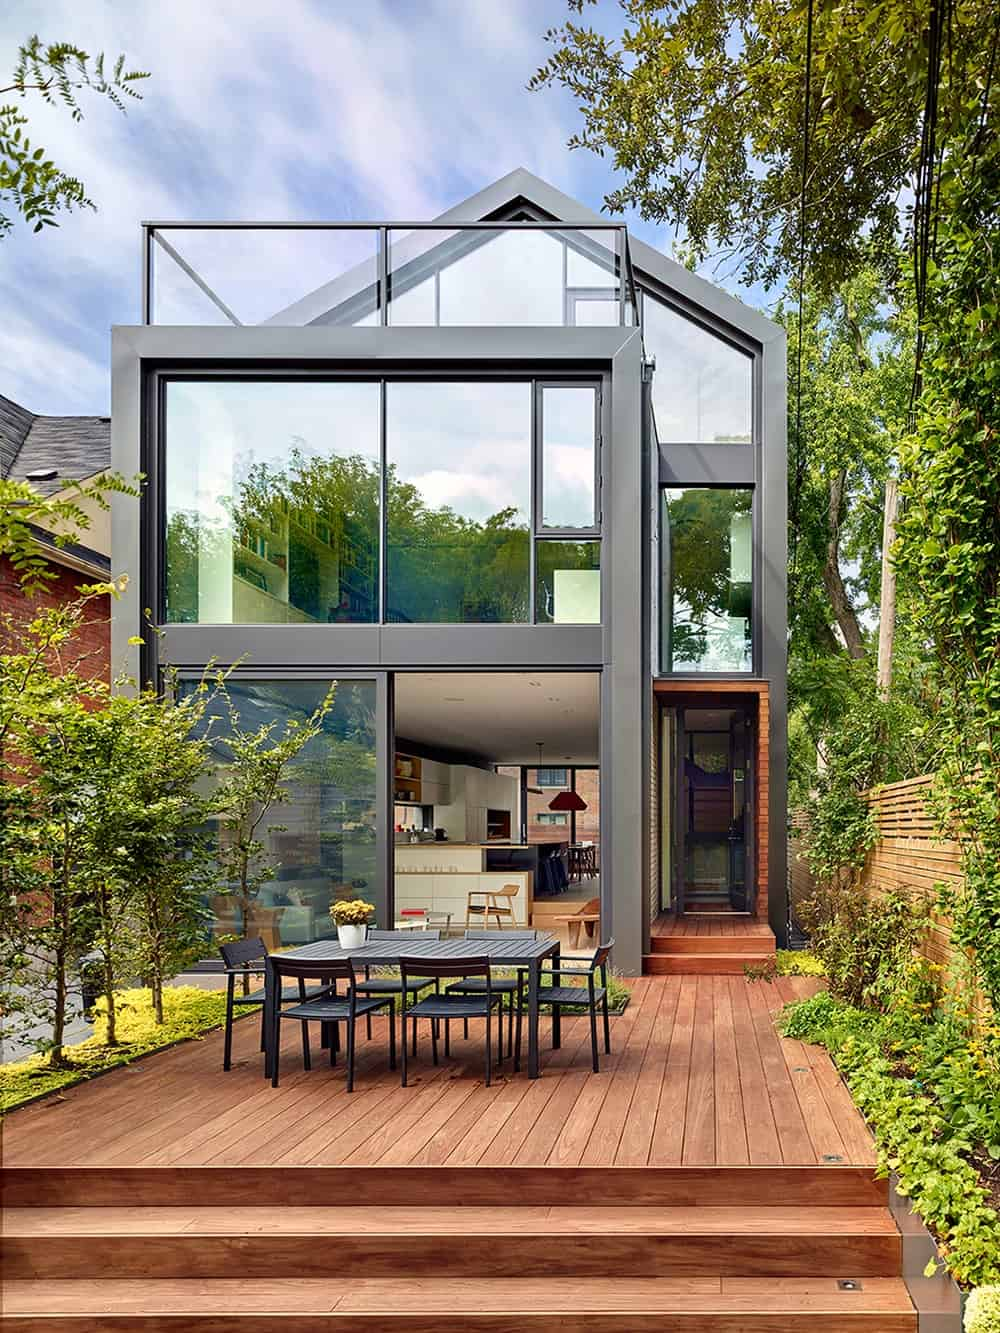 This is a look at the back of the house that is dominated by large laminated glass walls complemented by the surrounding landscape.